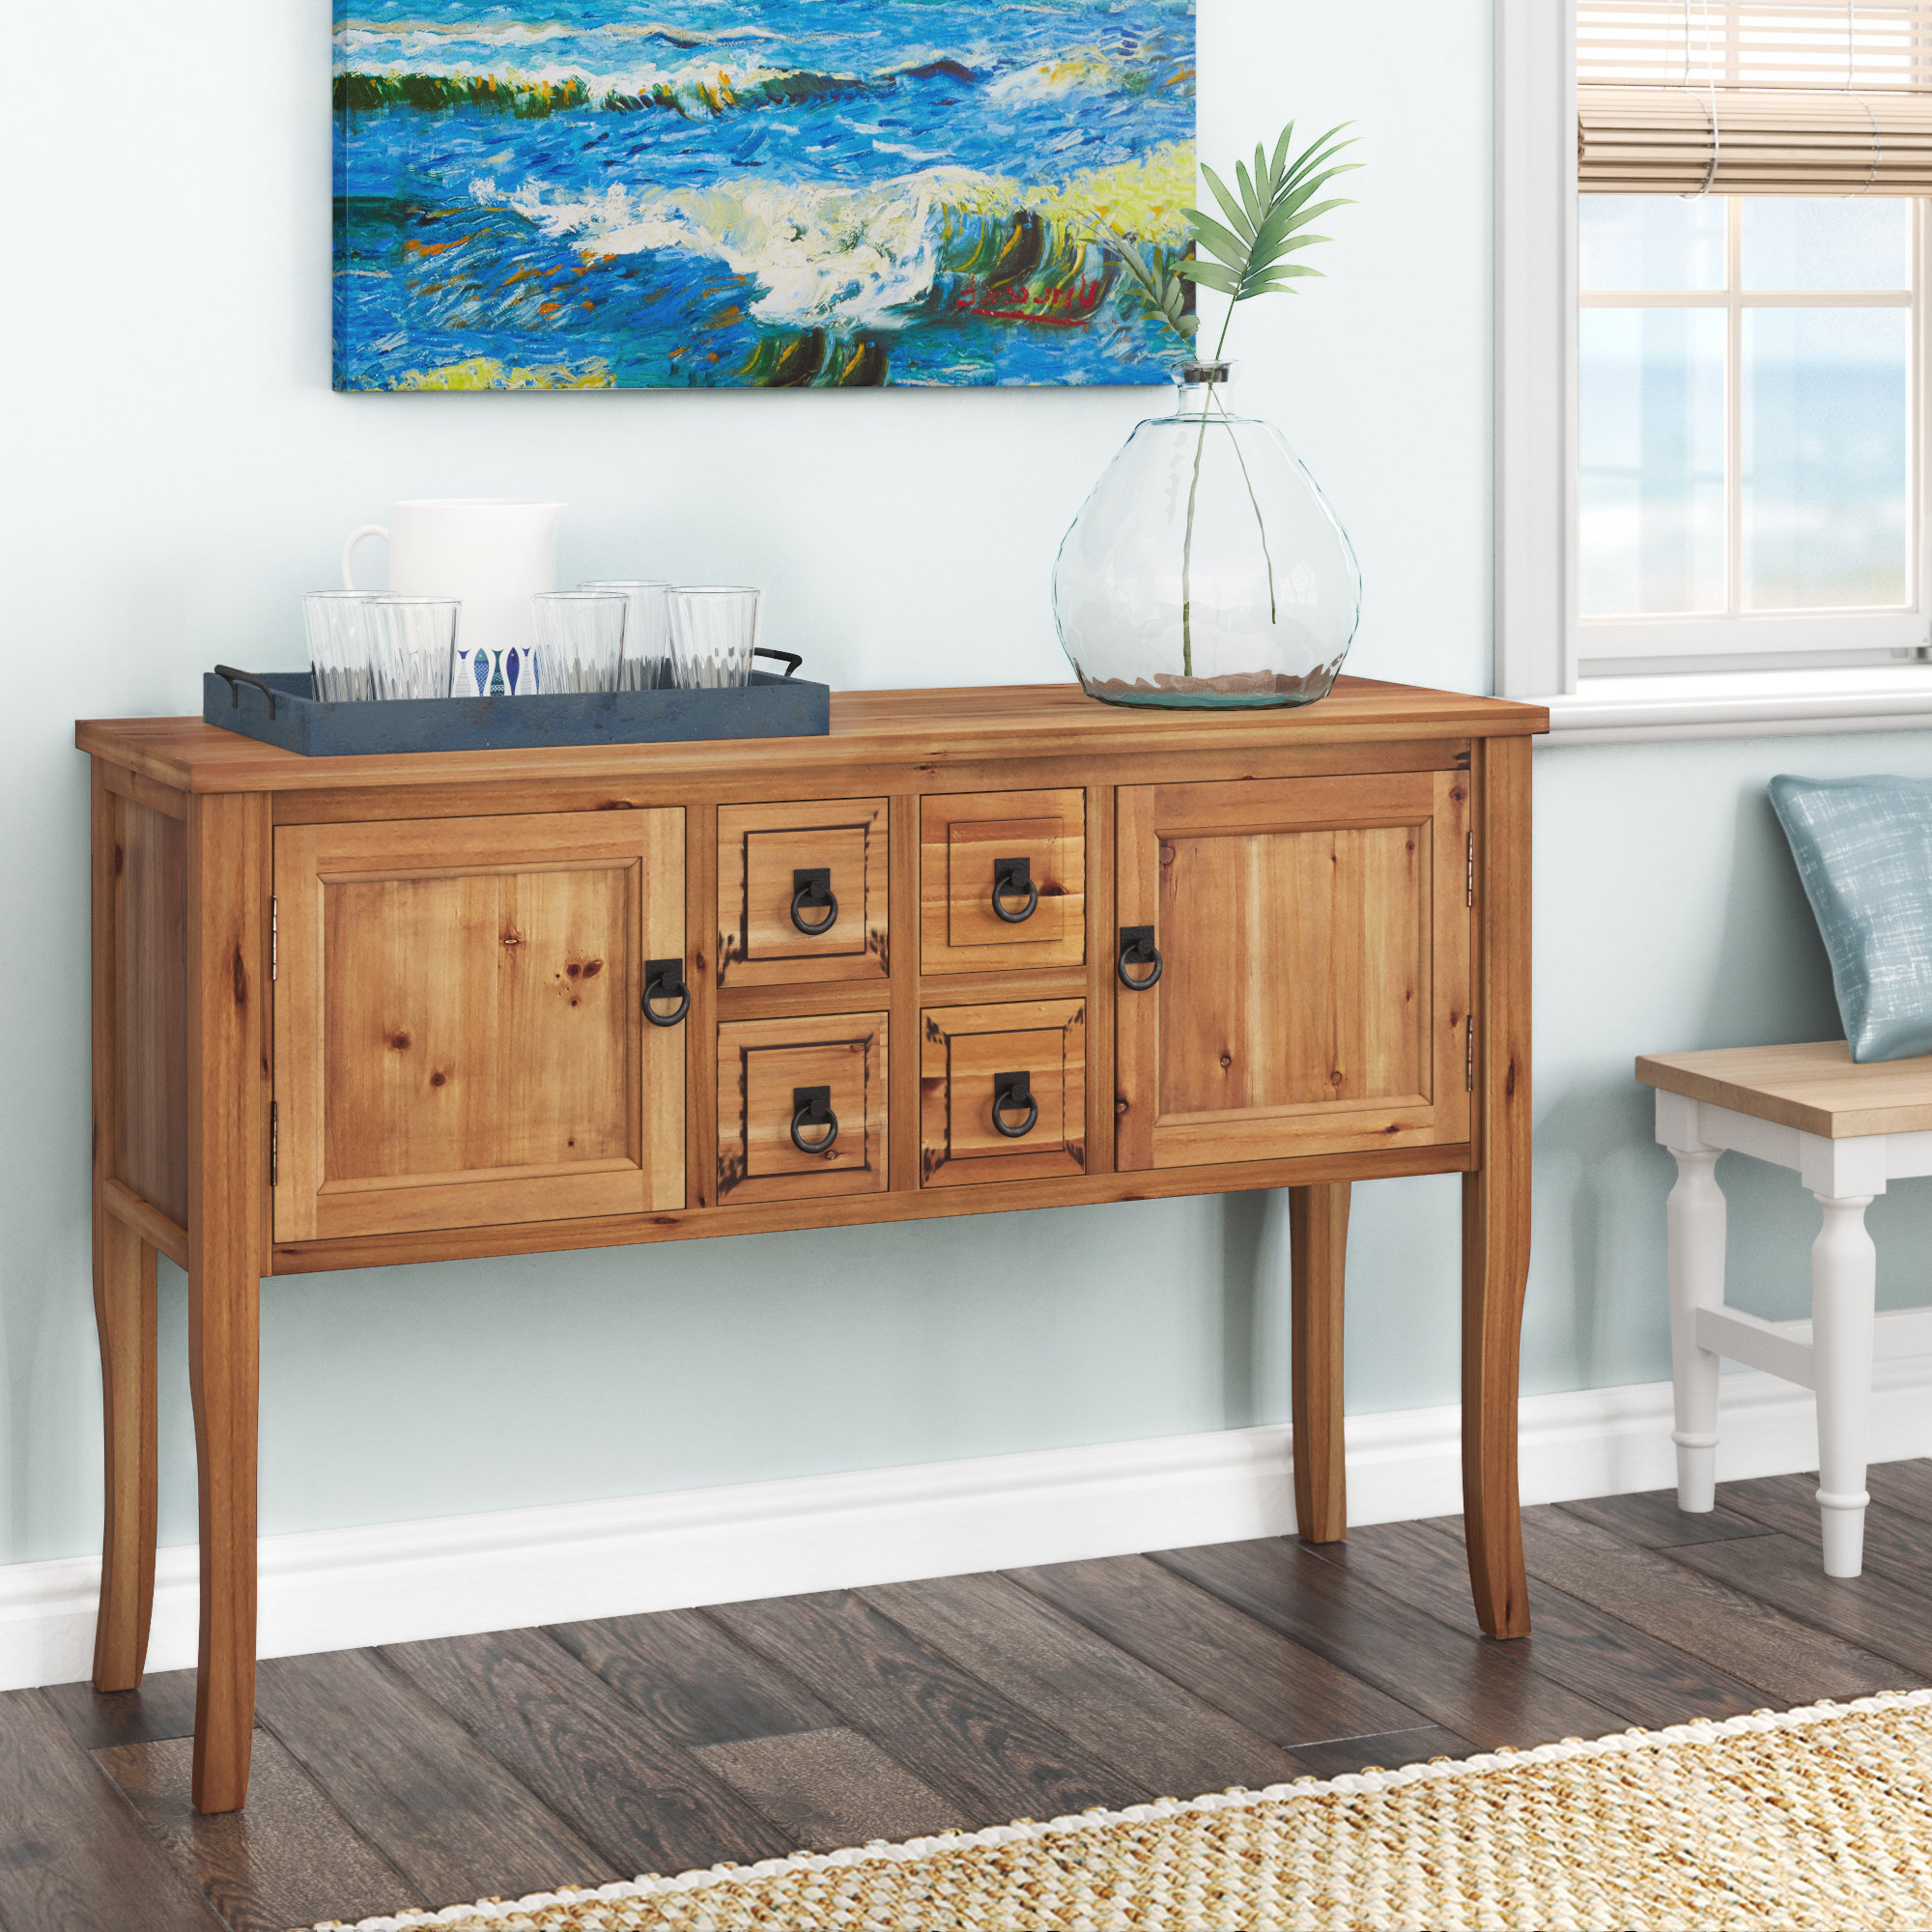 Chaffins Sideboards Intended For Fashionable Solid Wood Sideboards & Buffets You'll Love In  (View 6 of 20)